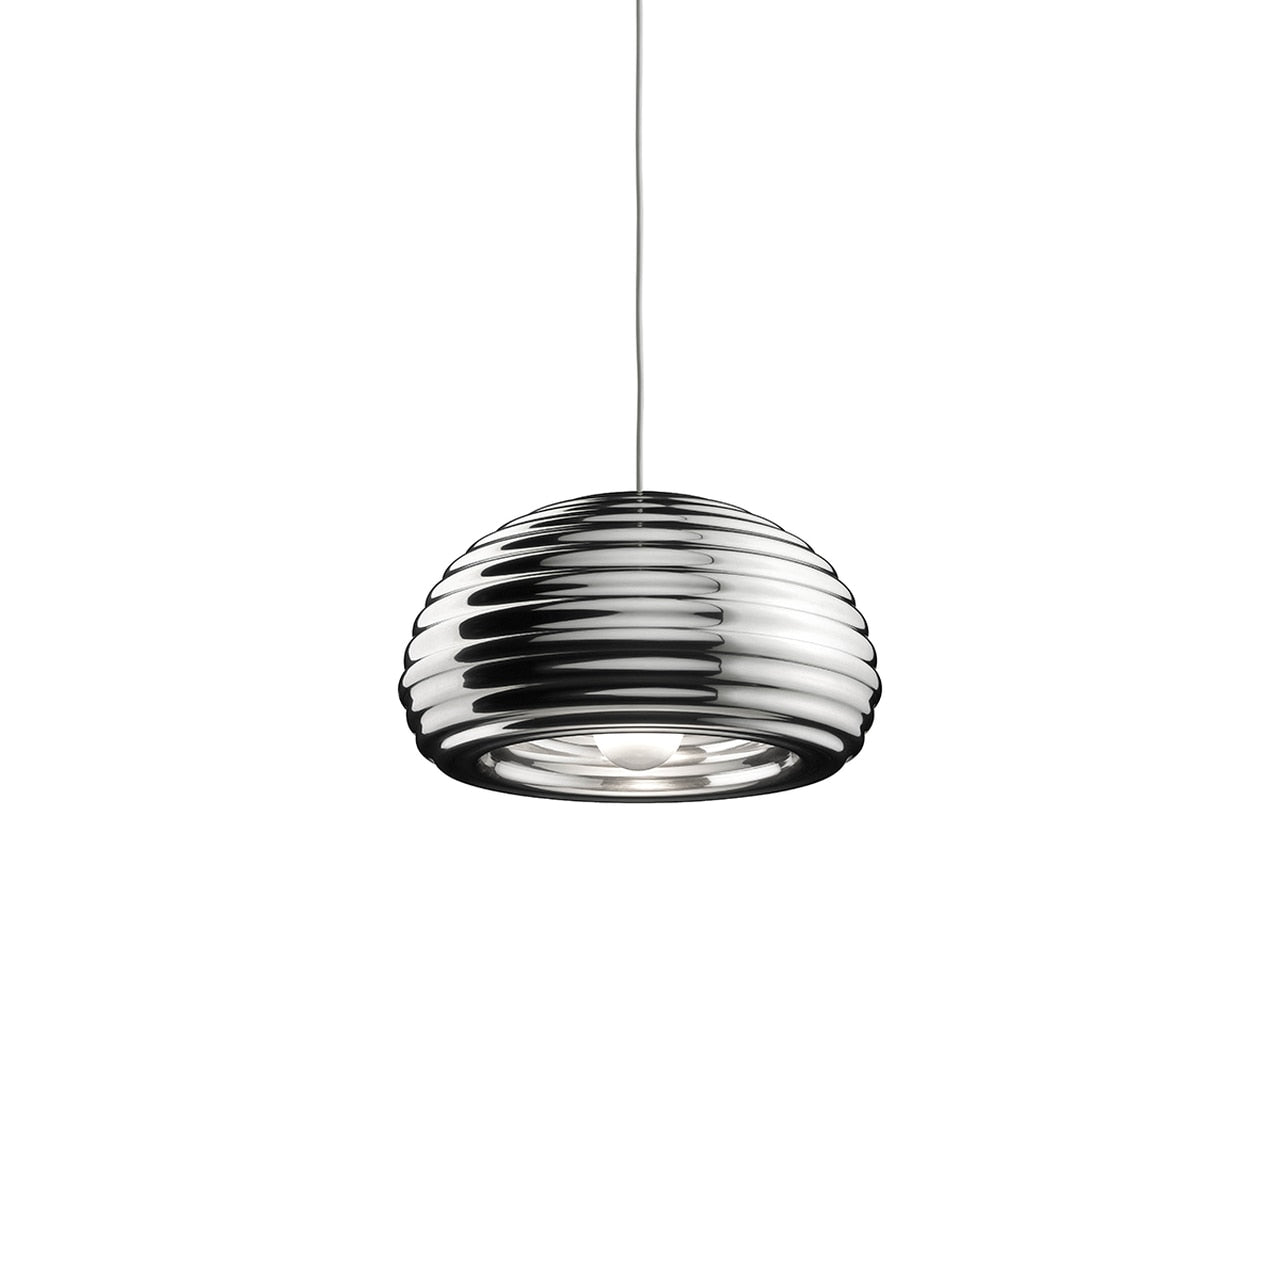 Splügen Braü - Pendant Light